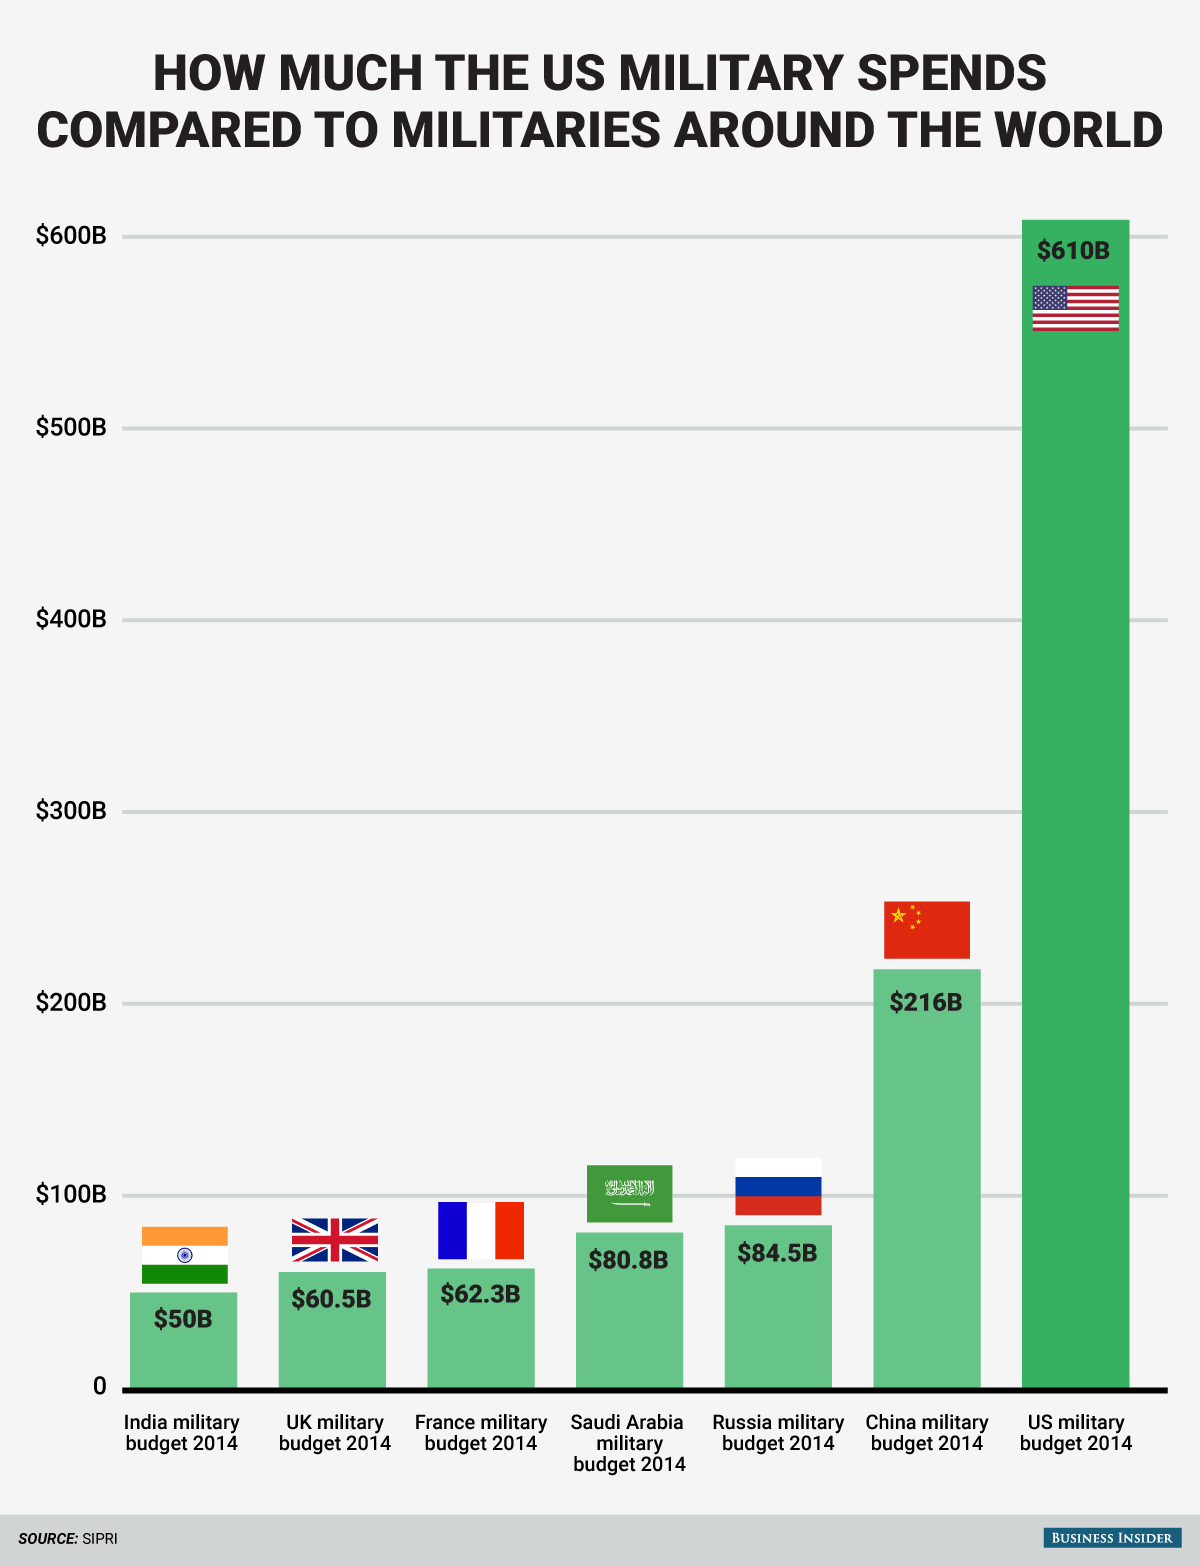 How Much The Us Military Spends Compared To The Rest Of